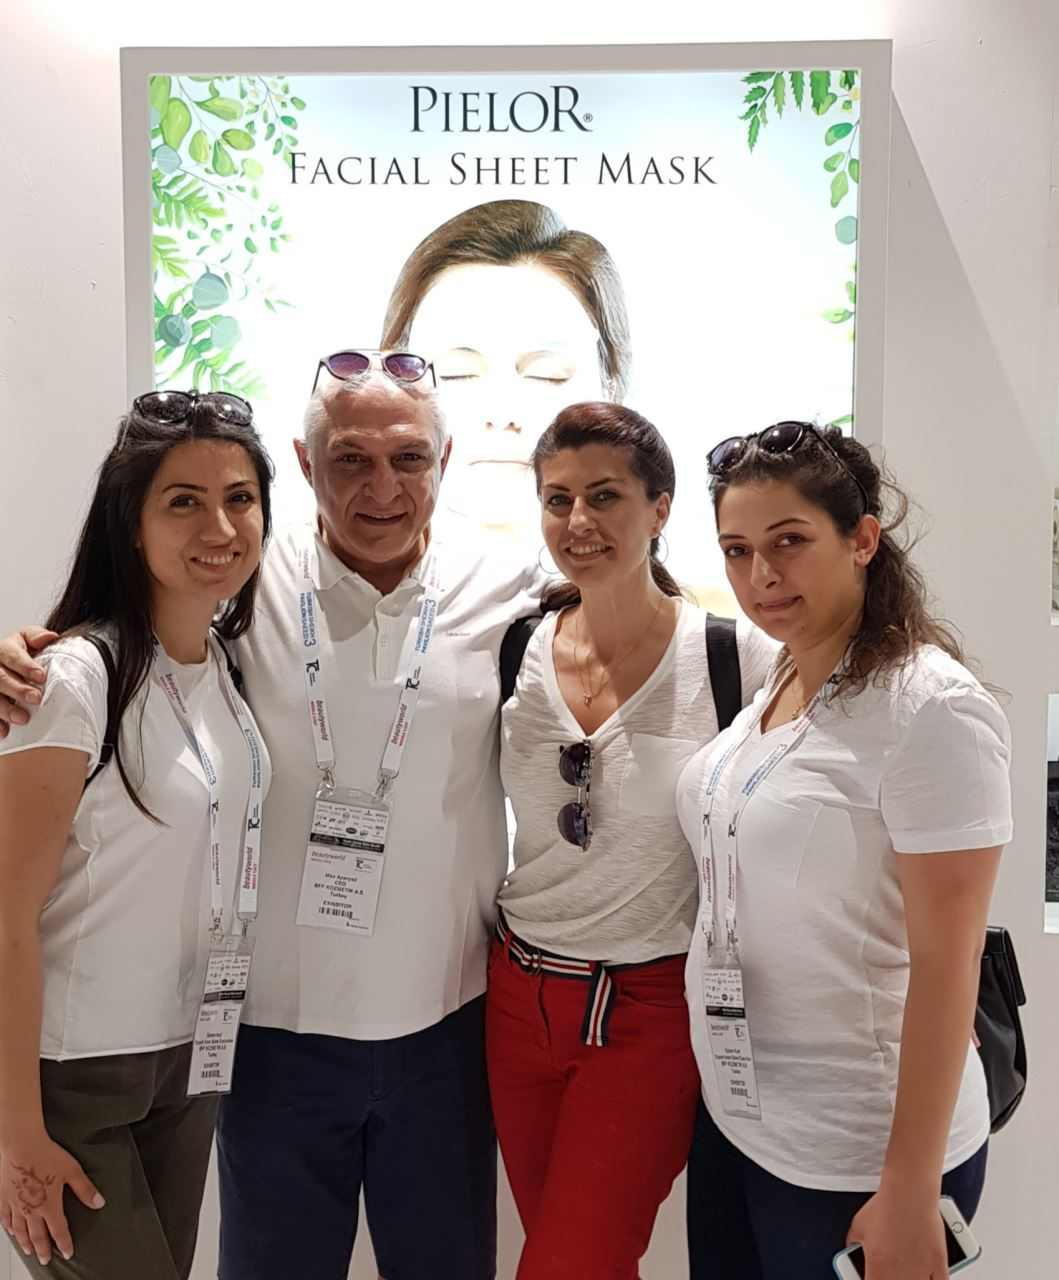 PIELOR met visitors at Beautyworld Middle East!